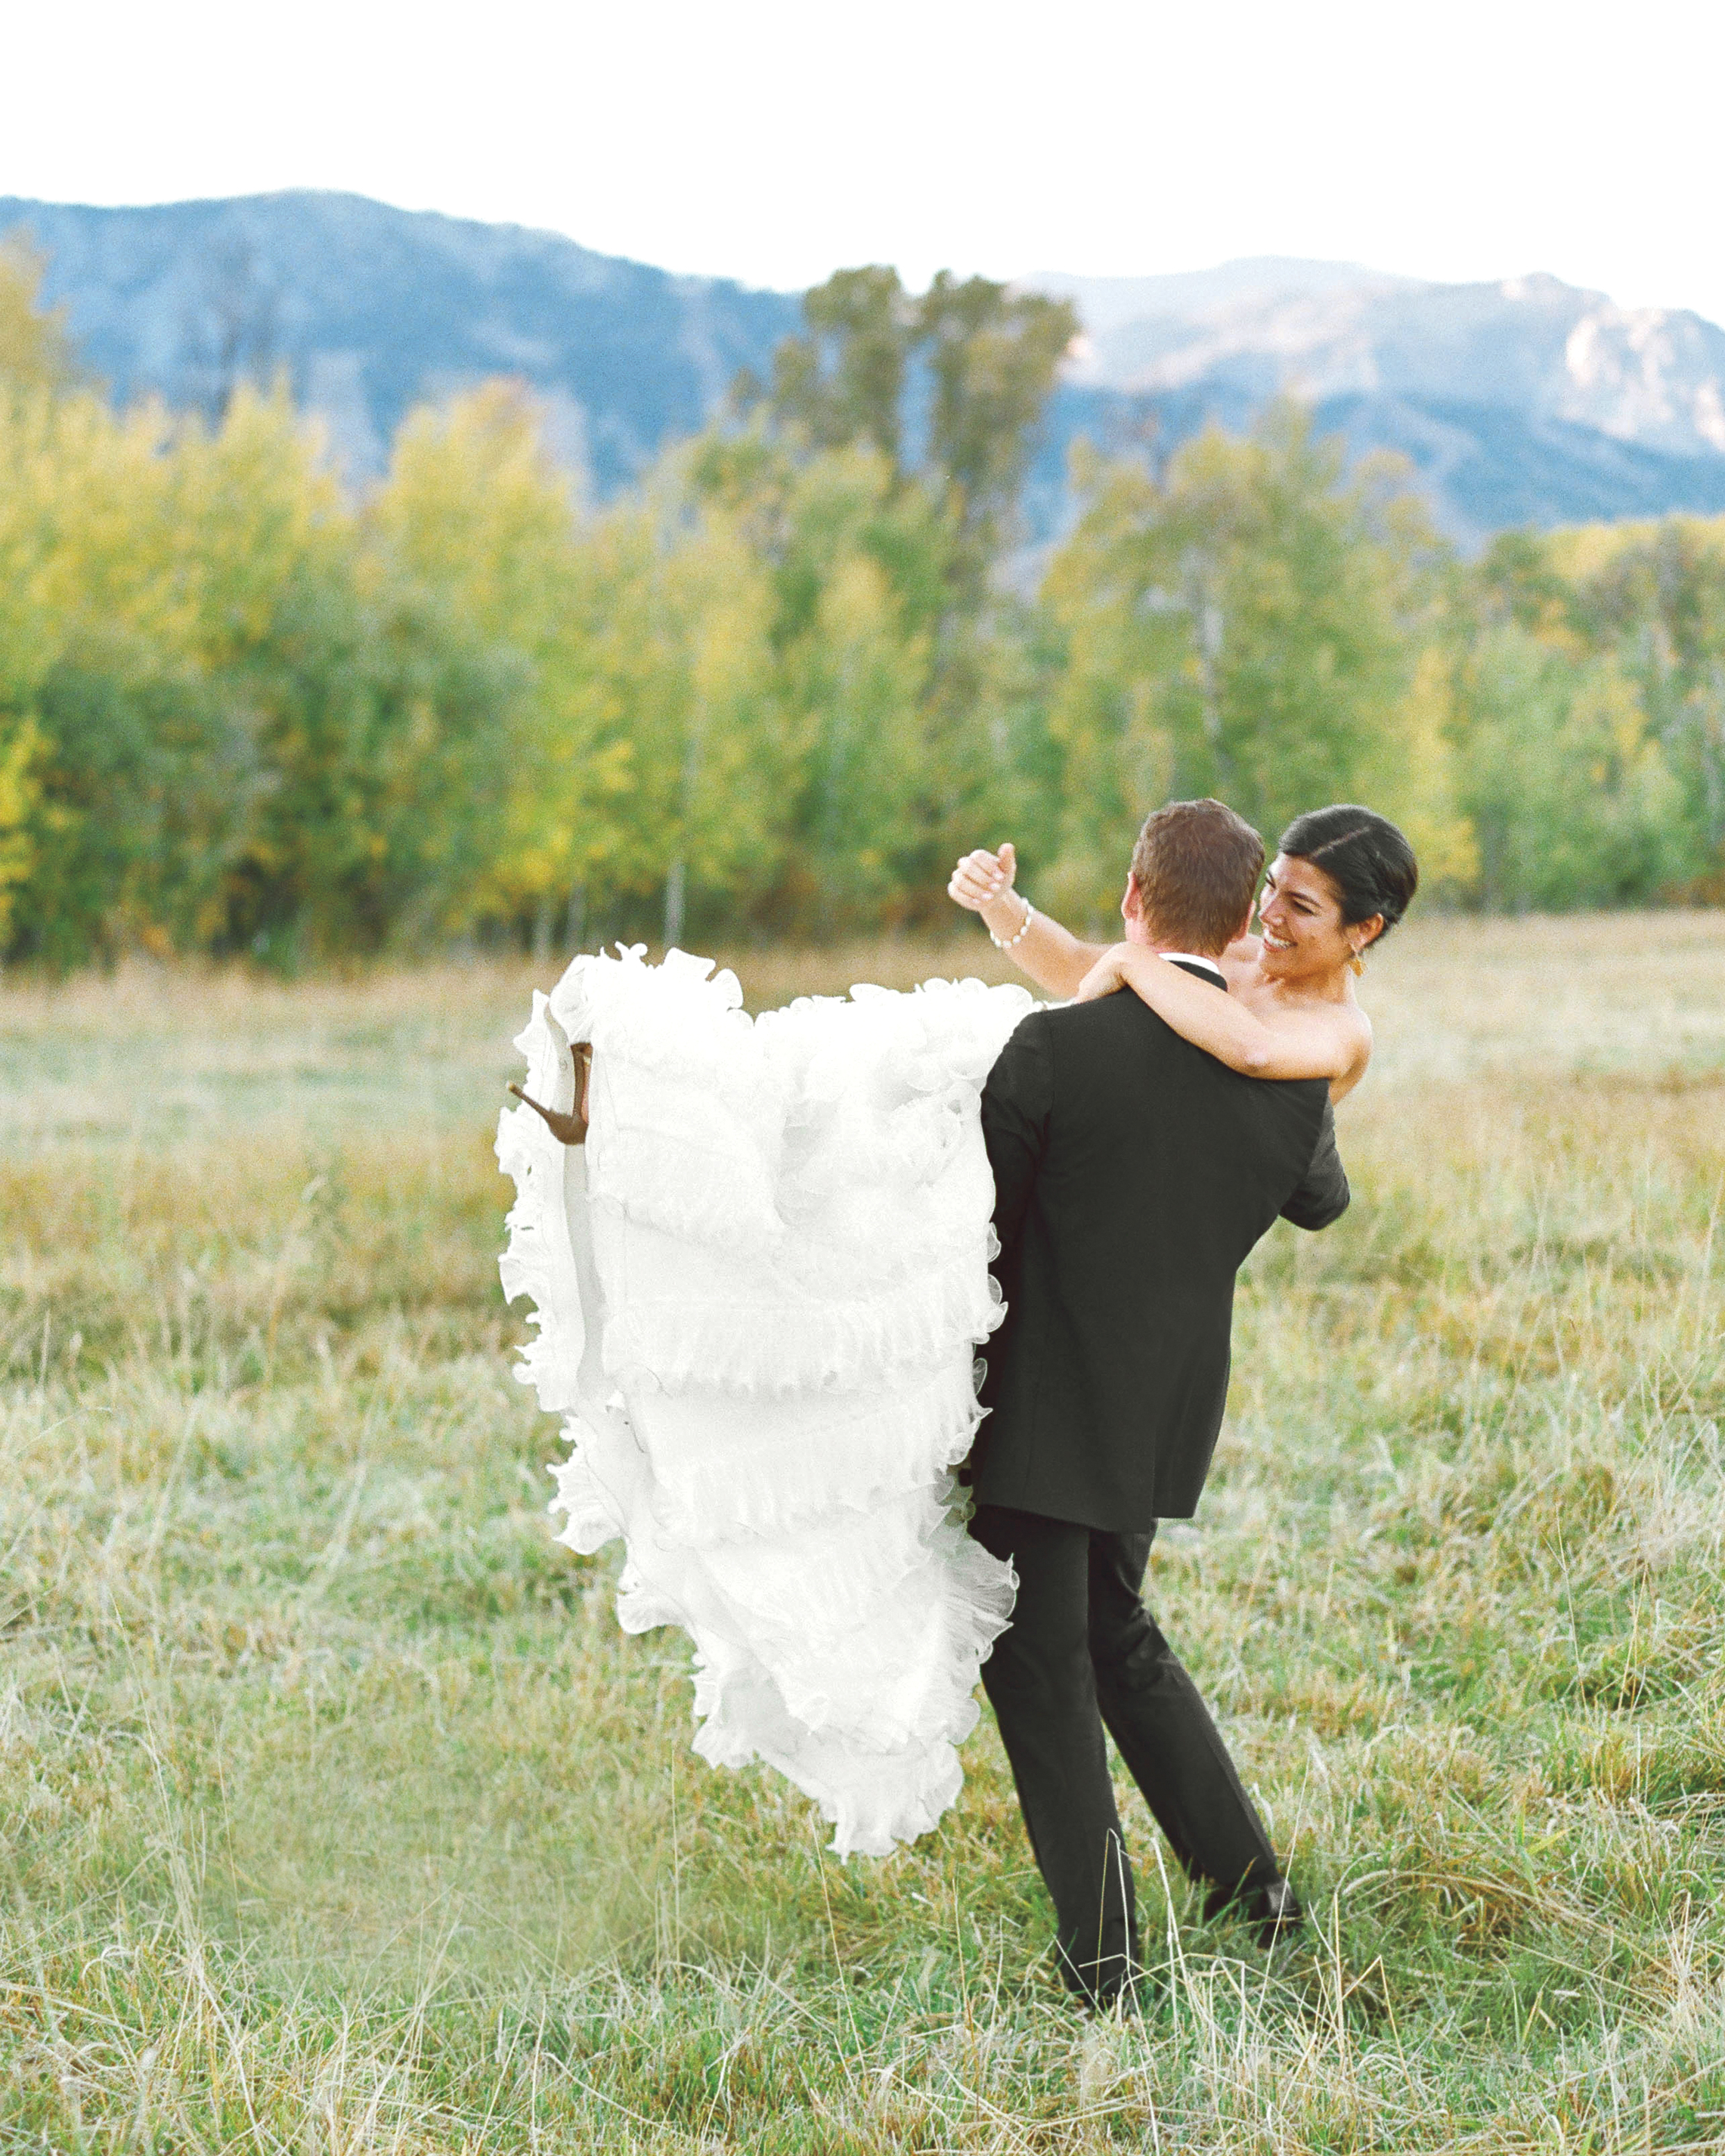 24 Ideas for Planning the Ultimate Fall Wedding